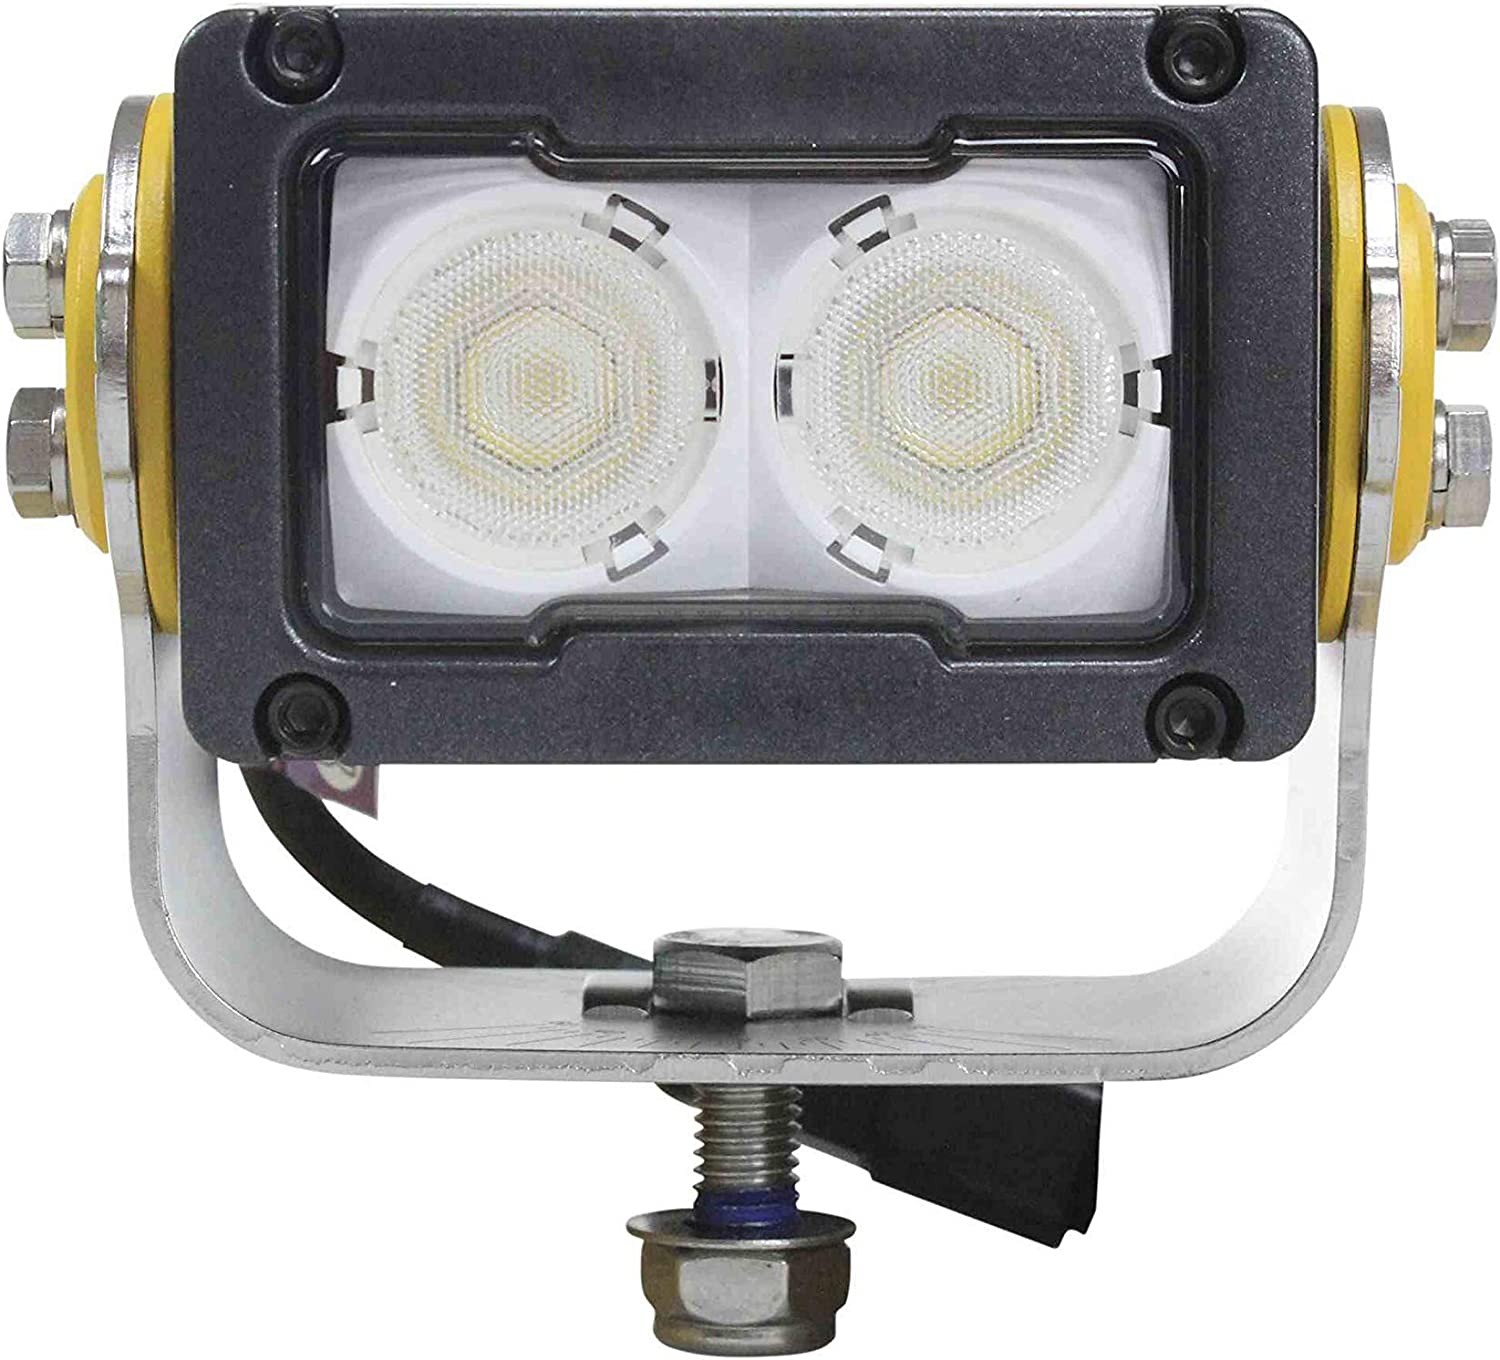 2 LEDs Degreed Aiming Soft Start LEDs 1 840 Lumens 20 Watt High Intensity LED Light